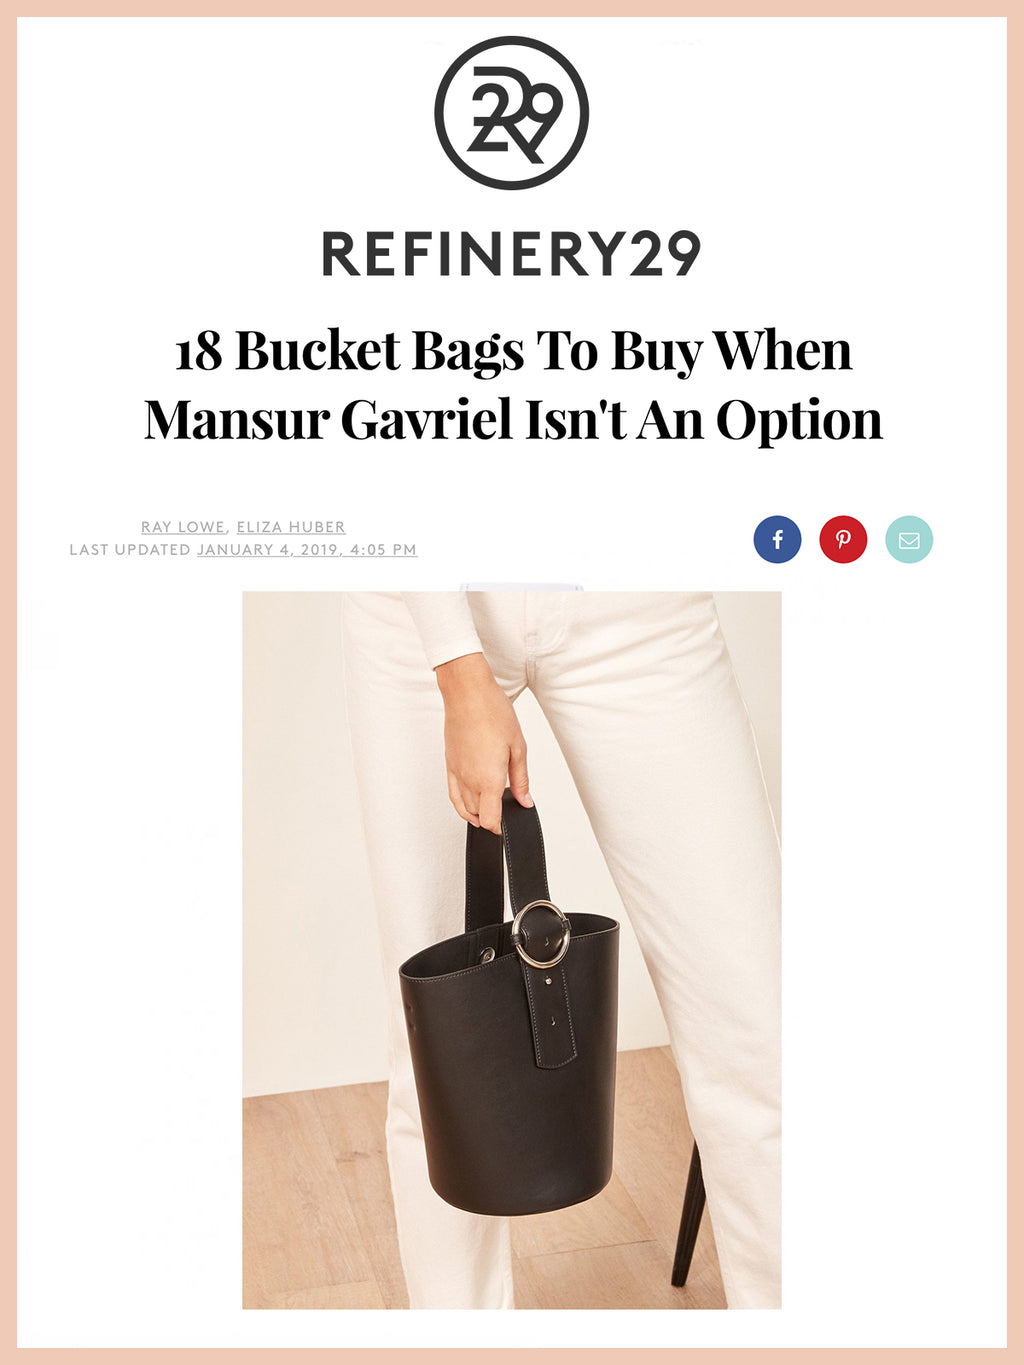 REFINERY29, 18 Bucket Bags To Buy When Mansur Gavriel Isn't An Option